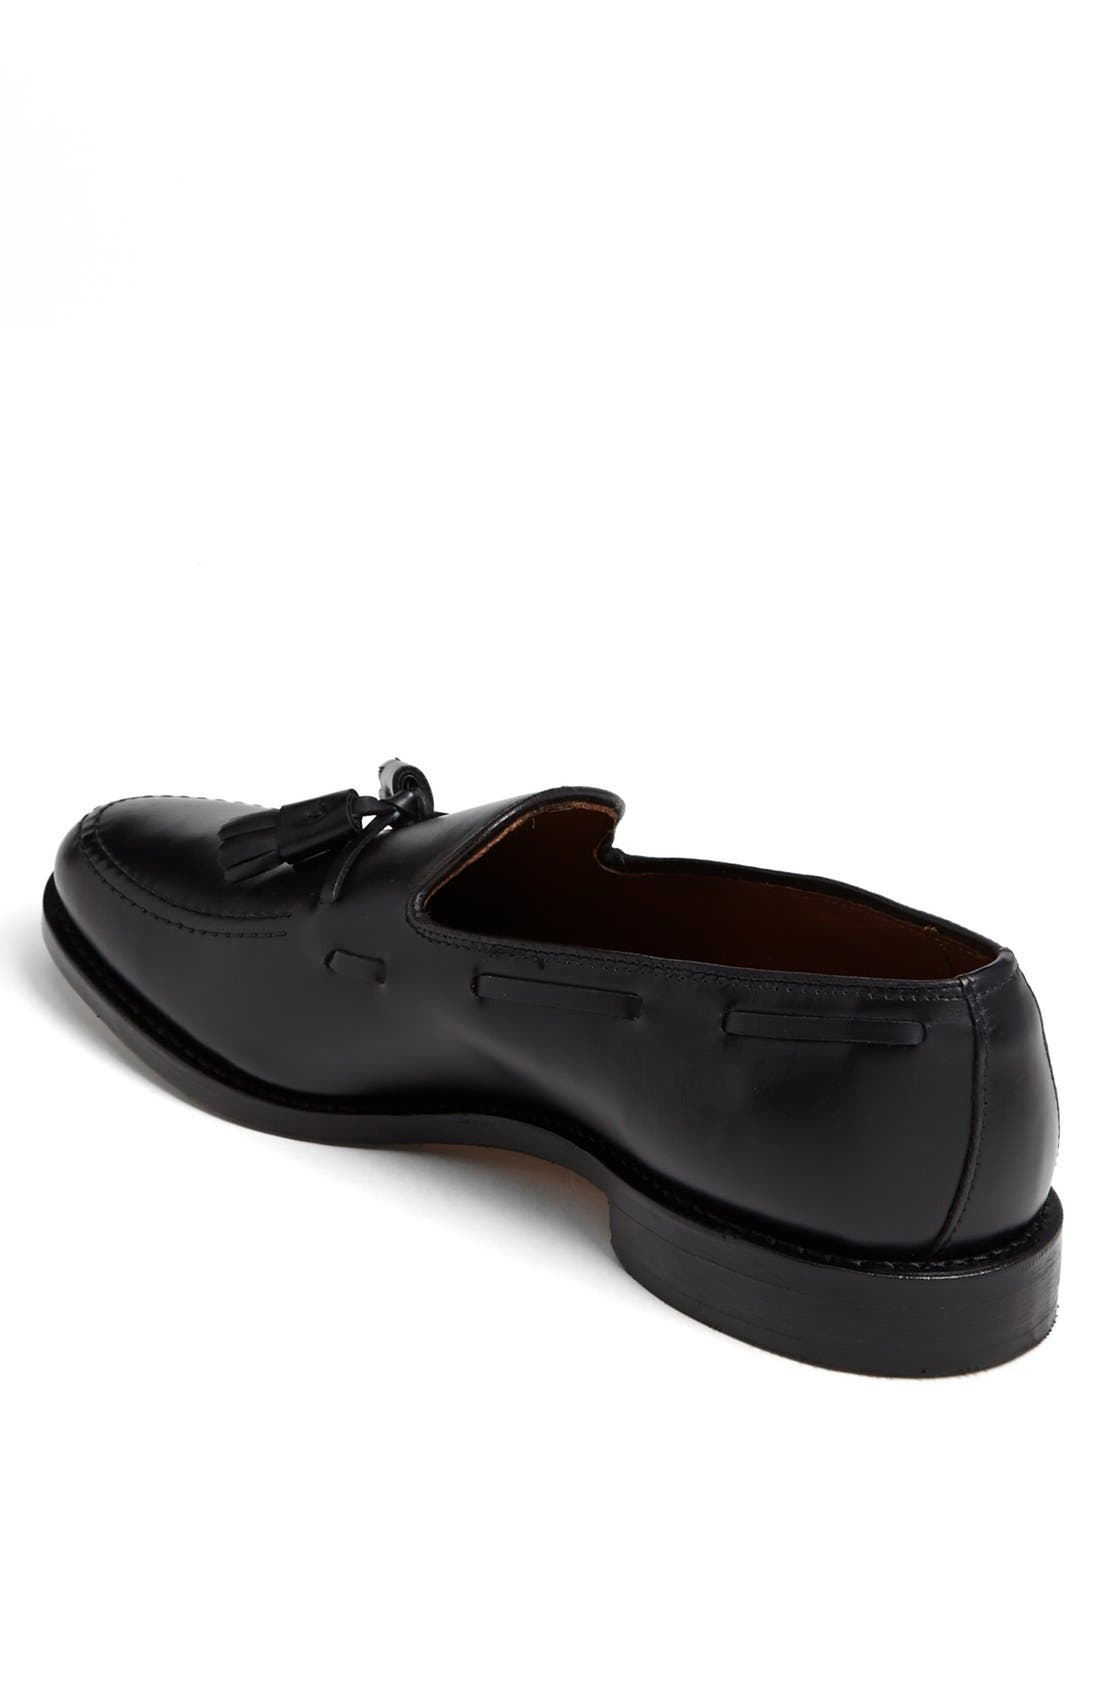 'Grayson' Tassel Loafer,                             Alternate thumbnail 2, color,                             Black Leather